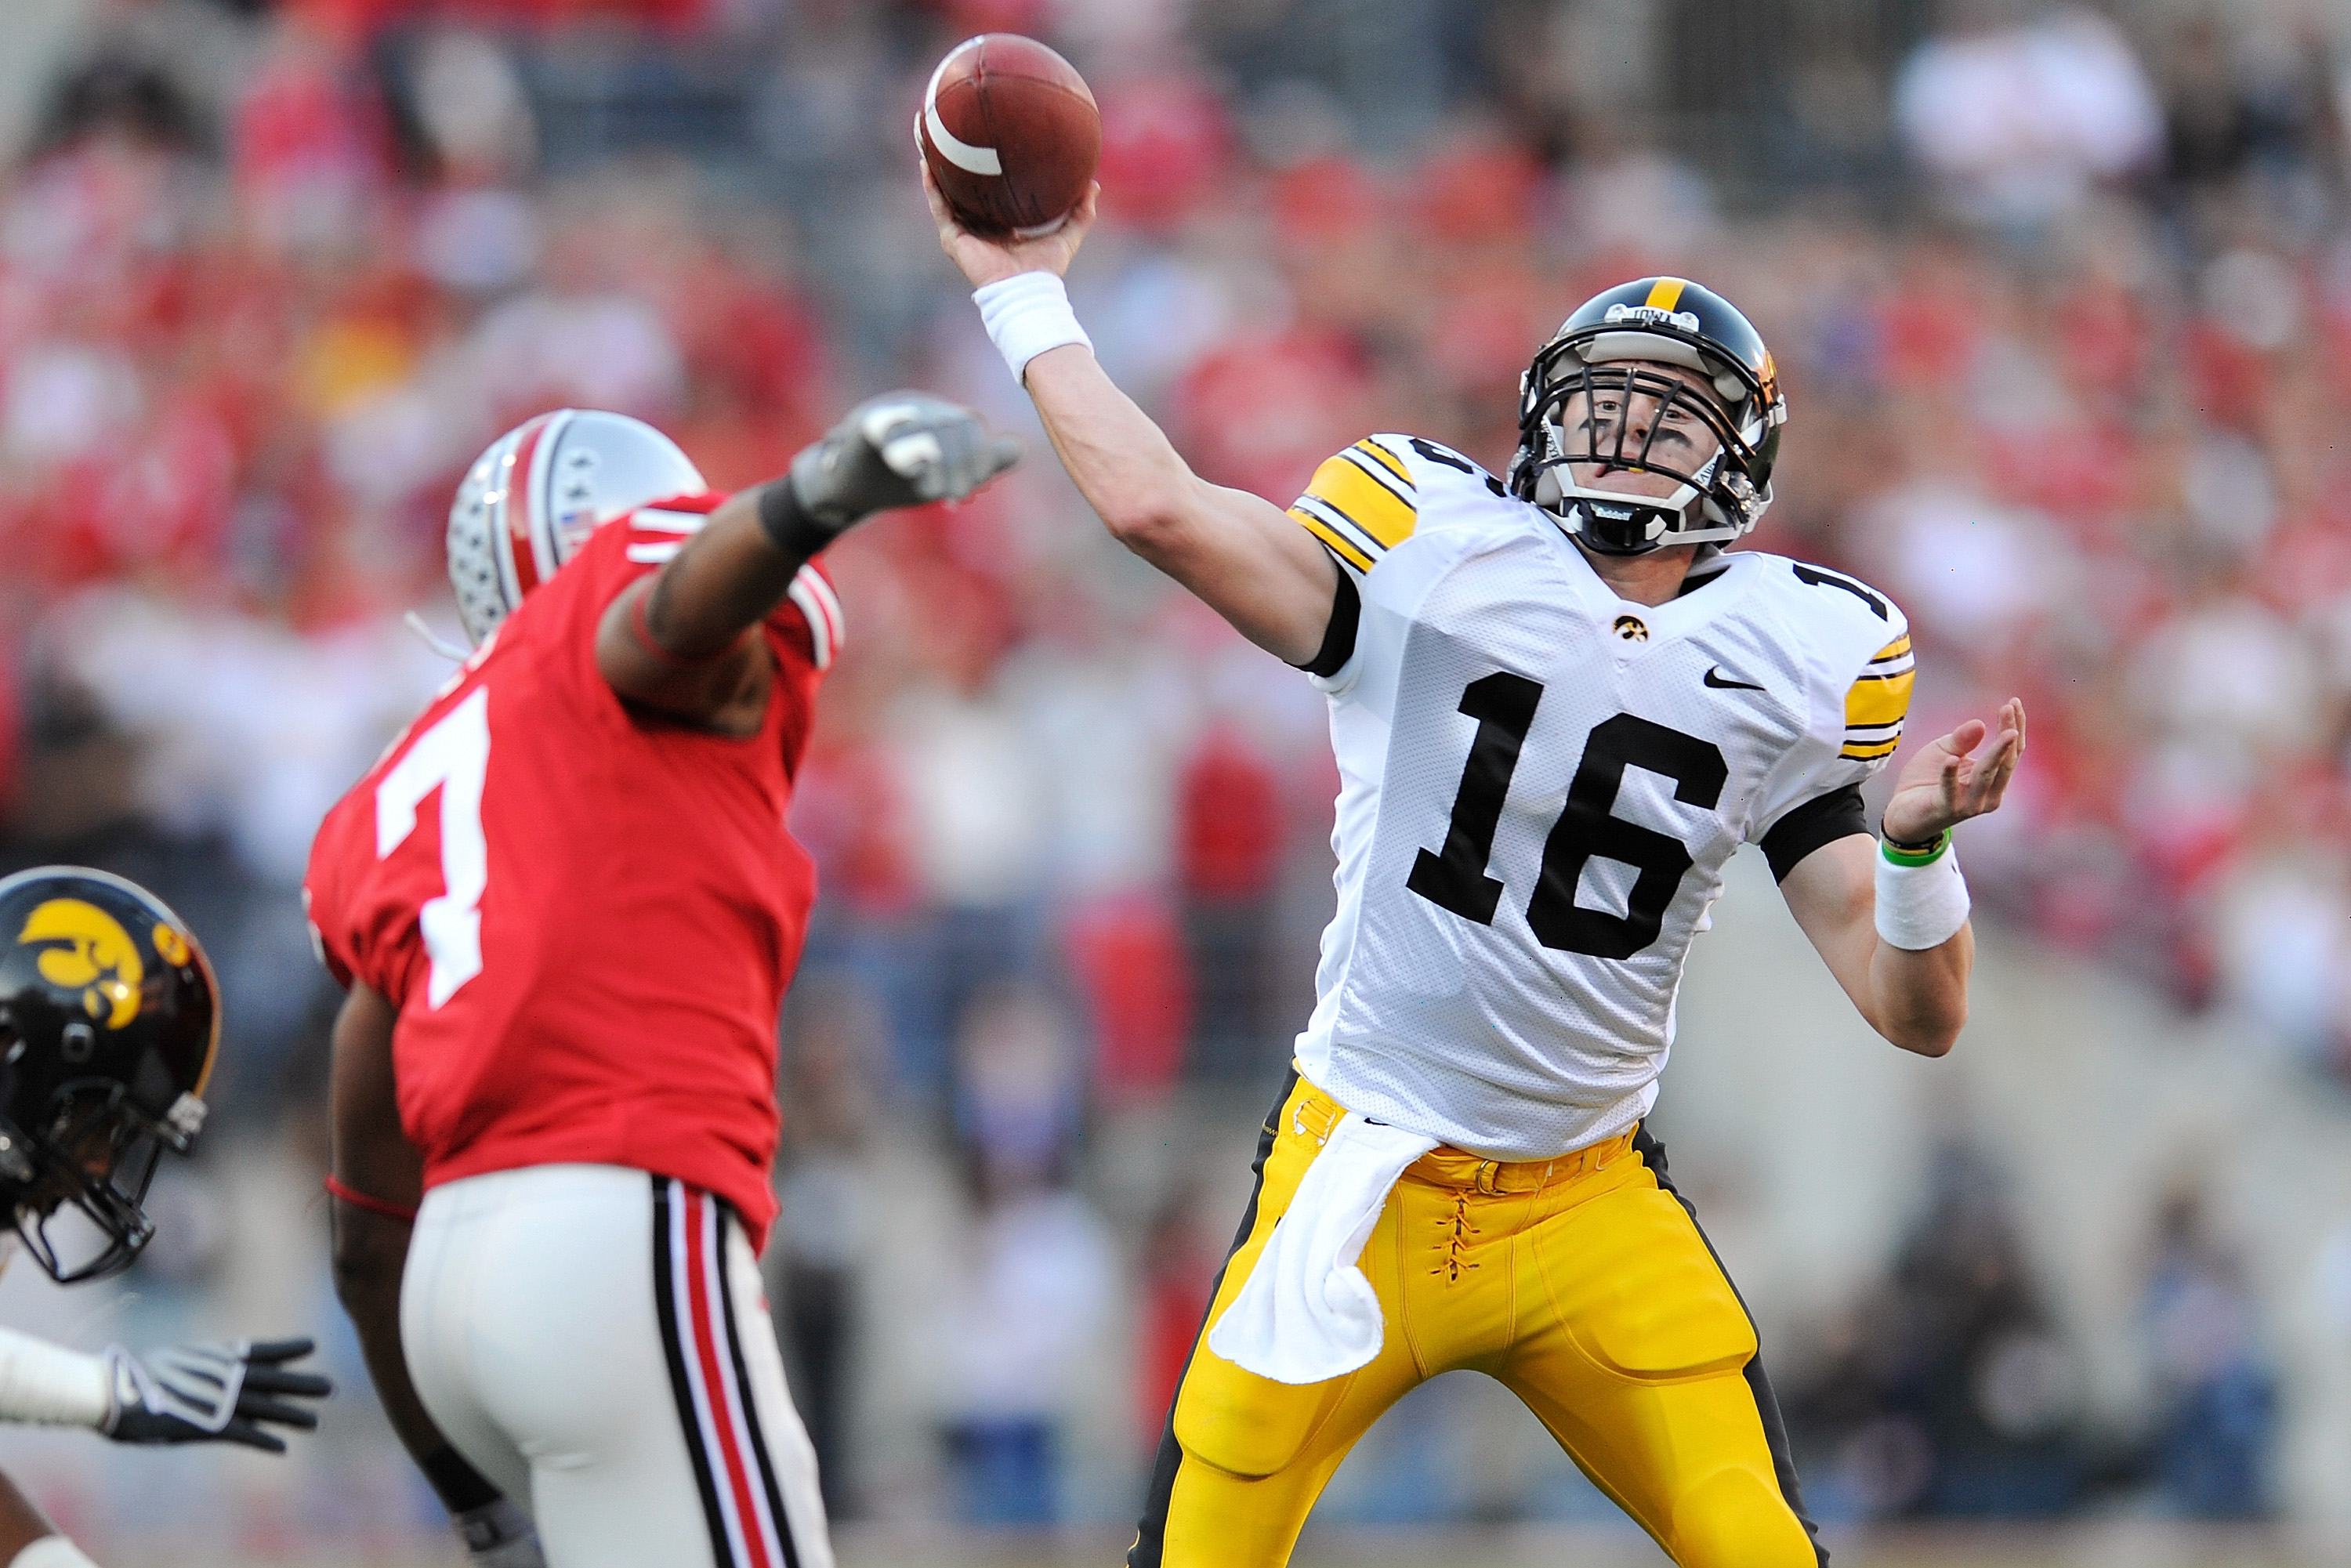 COLUMBUS, OH - NOVEMBER 14:  Quarterback James Vandenberg #16 of the Iowa Hawkeyes passes the ball against the Ohio State Buckeyes at Ohio Stadium on November 14, 2009 in Columbus, Ohio.  (Photo by Jamie Sabau/Getty Images)